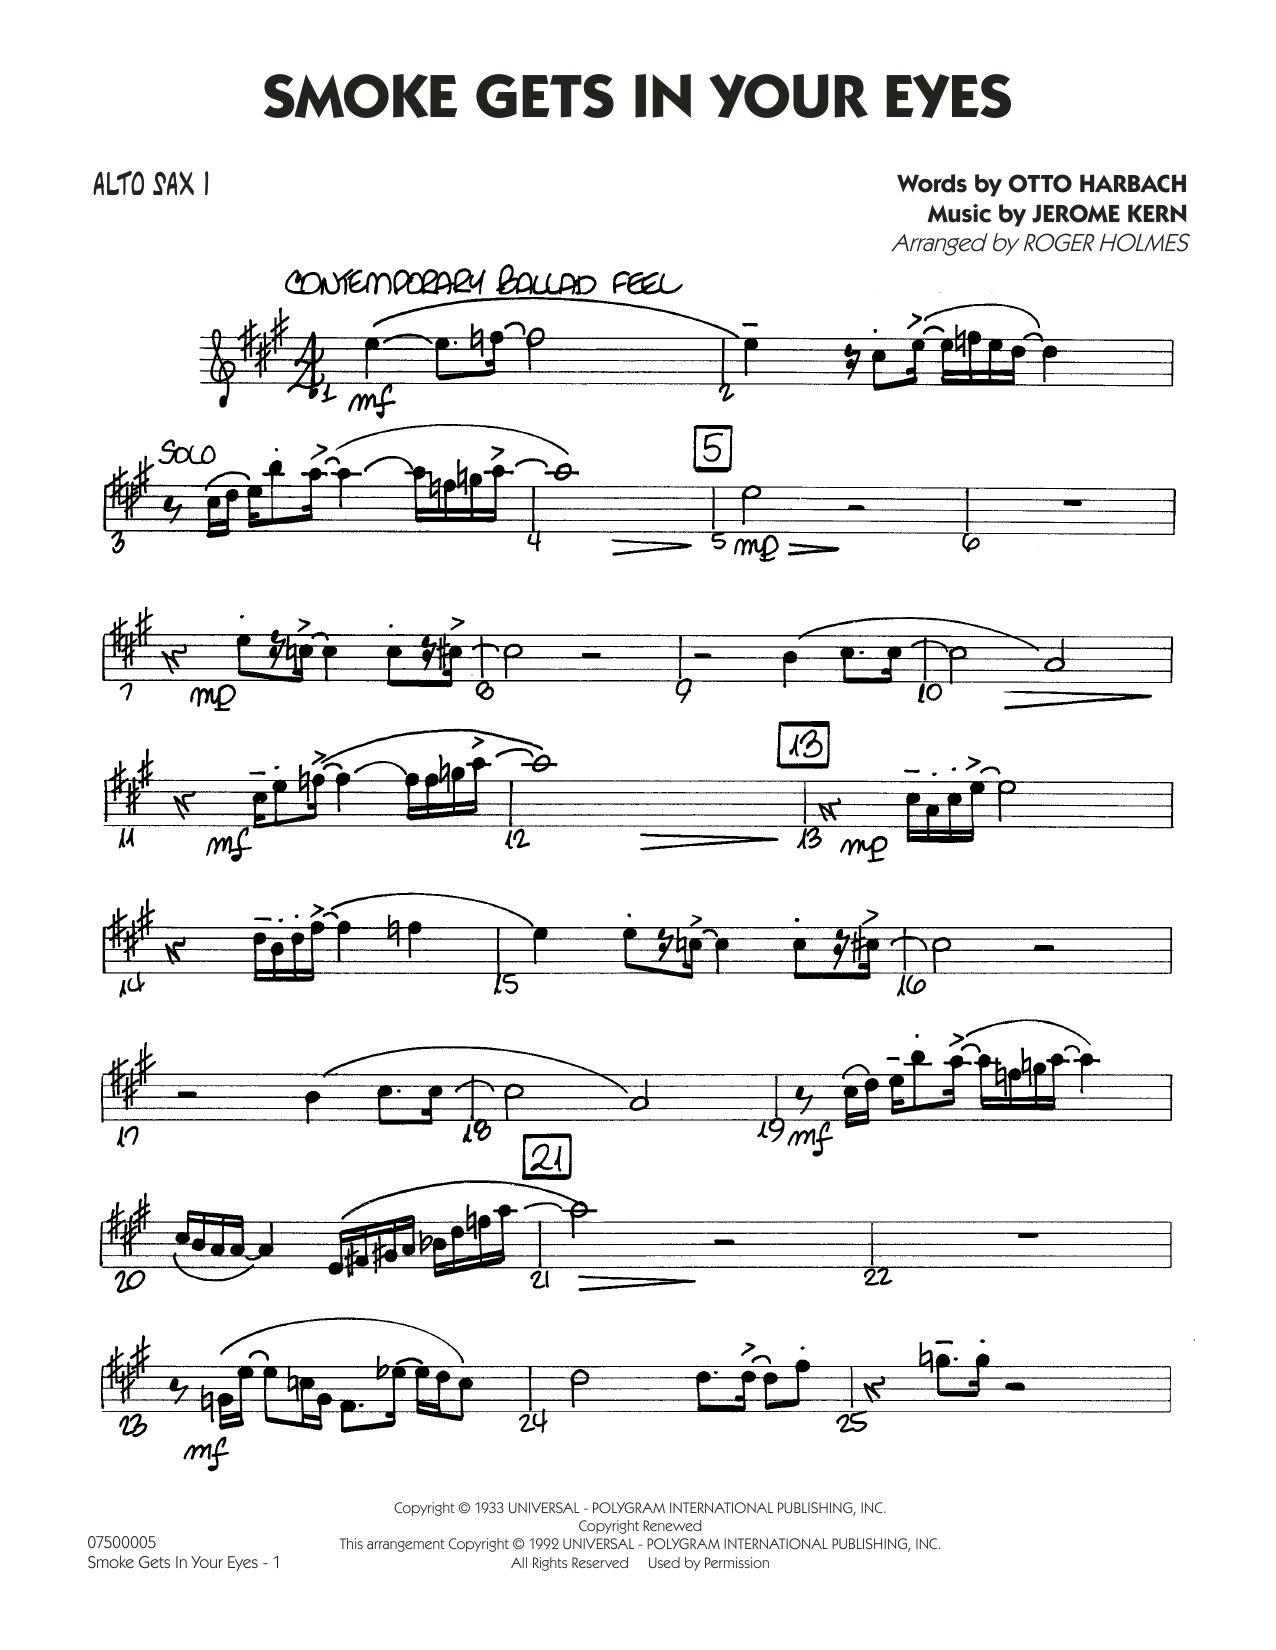 The Platters 'Smoke Gets In Your Eyes (arr  Roger Holmes) - Alto Sax 1'  Sheet Music Notes, Chords | Download Printable Jazz Ensemble - SKU: 404896